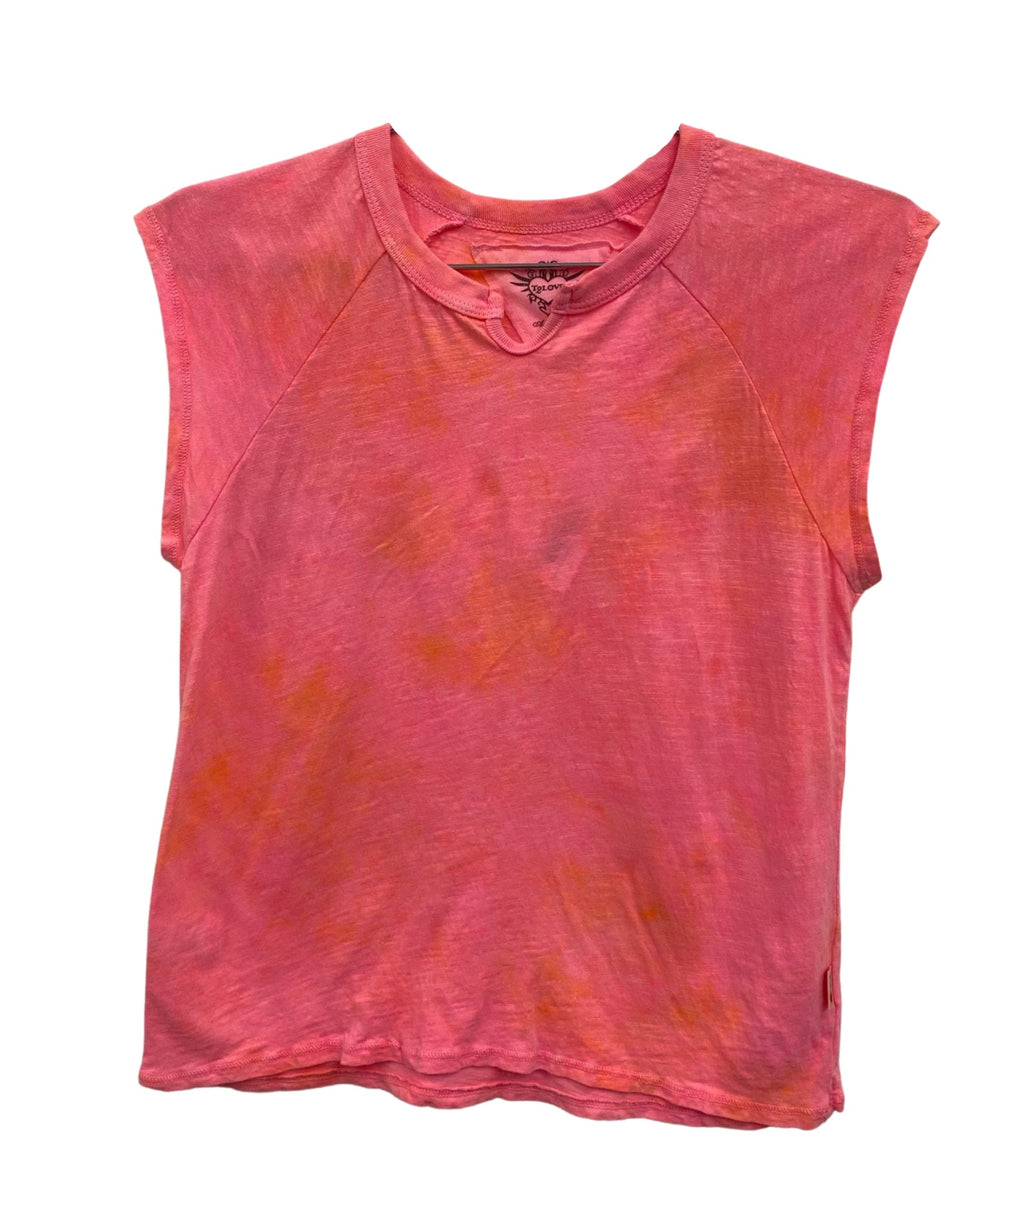 T2 Love Girls Neon Tie Dye Notch Tee